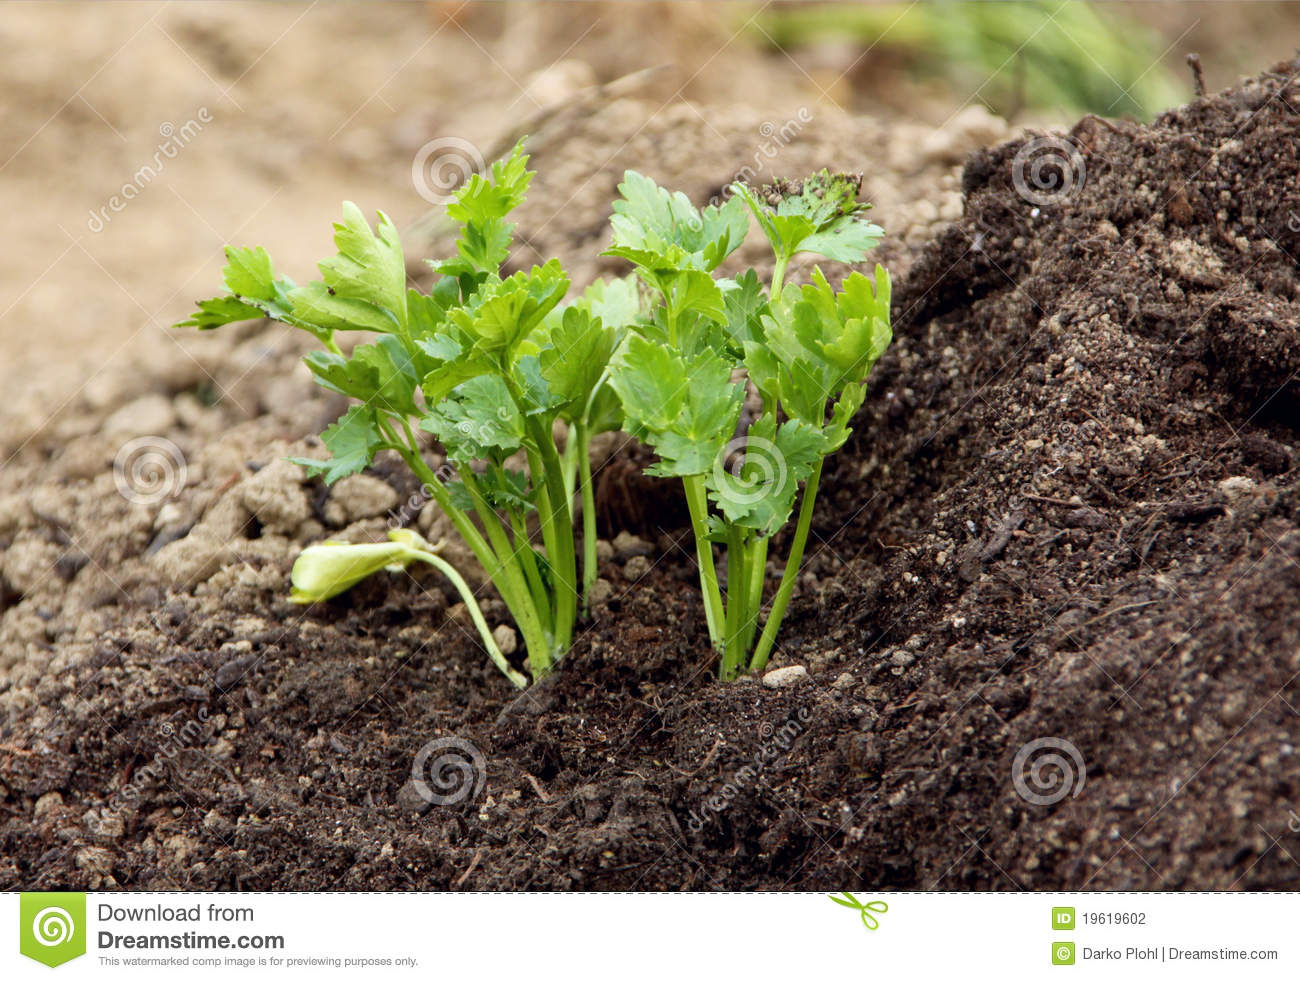 Persley plant and garden soil stock photo image 19619602 for Soil for plants